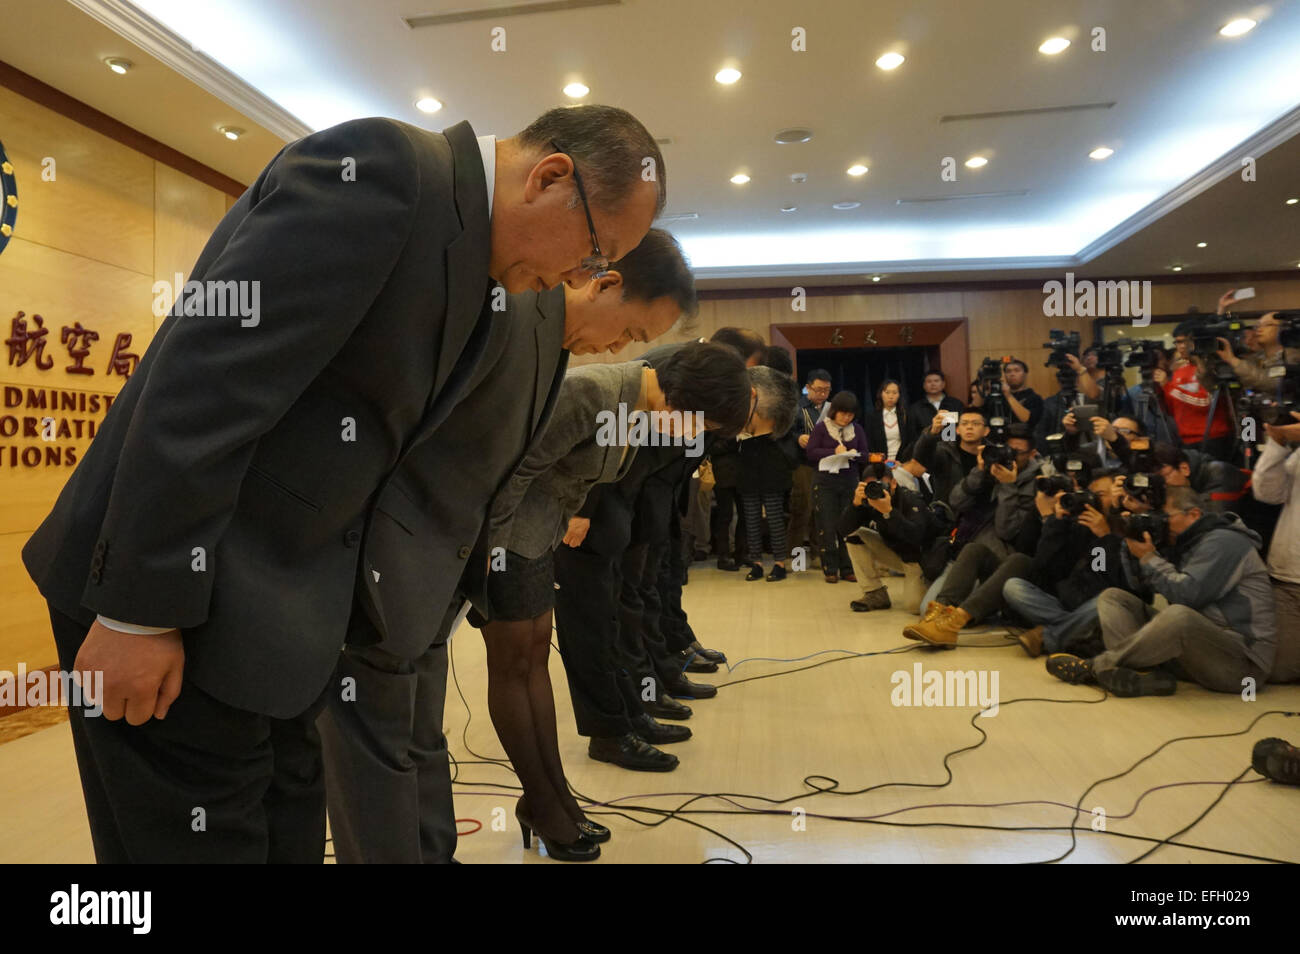 Taipei. 4th Feb, 2015. Senior management staff of Taiwan TransAsia Airways bow to show their regret for a plane - Stock Image